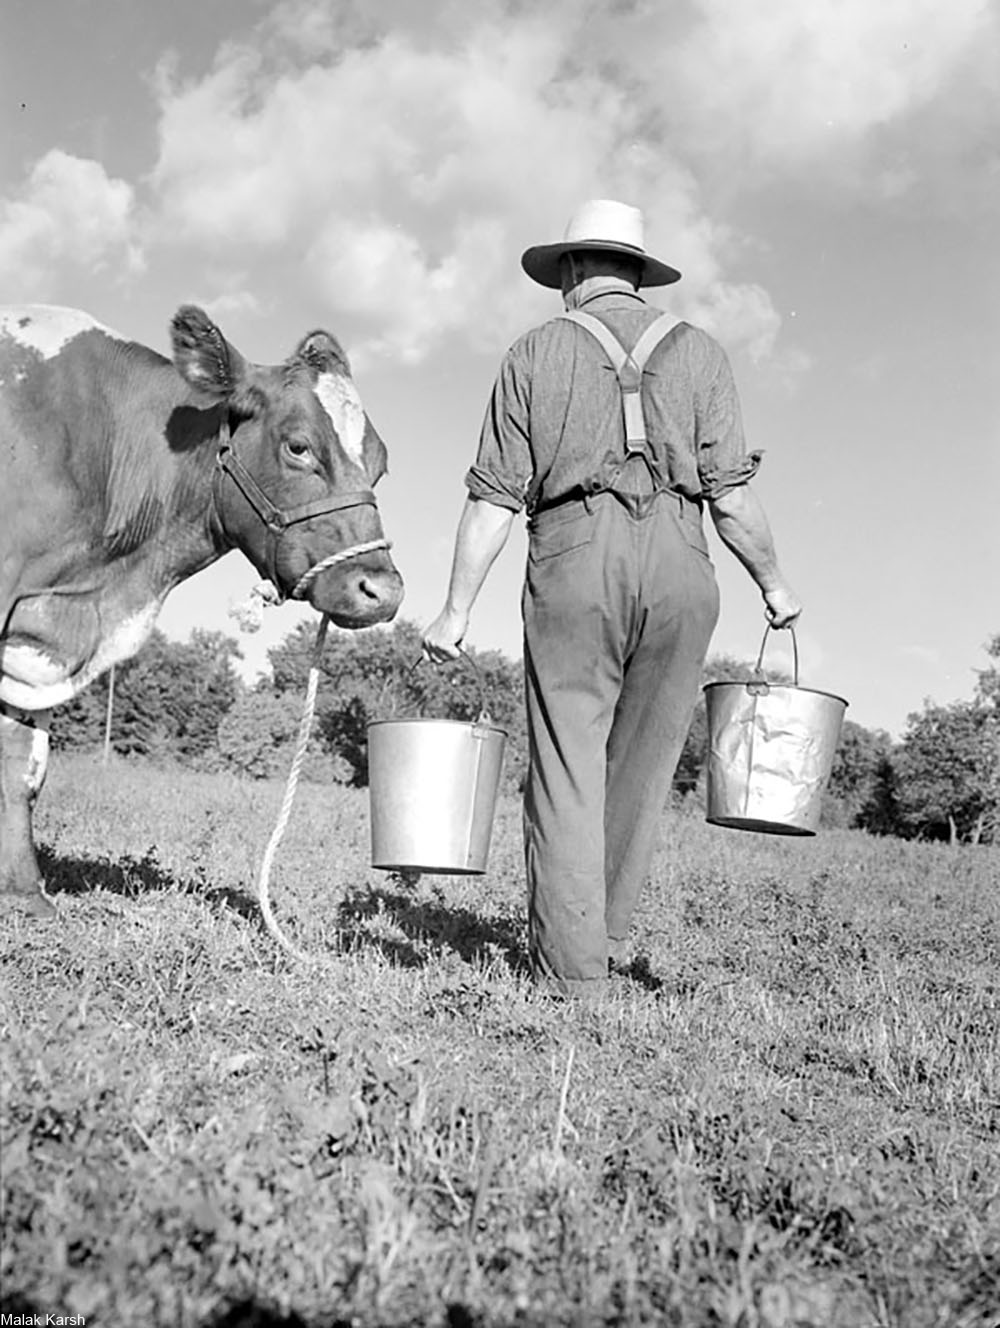 collecting milk in buckets after hand milking cows, black and white photo